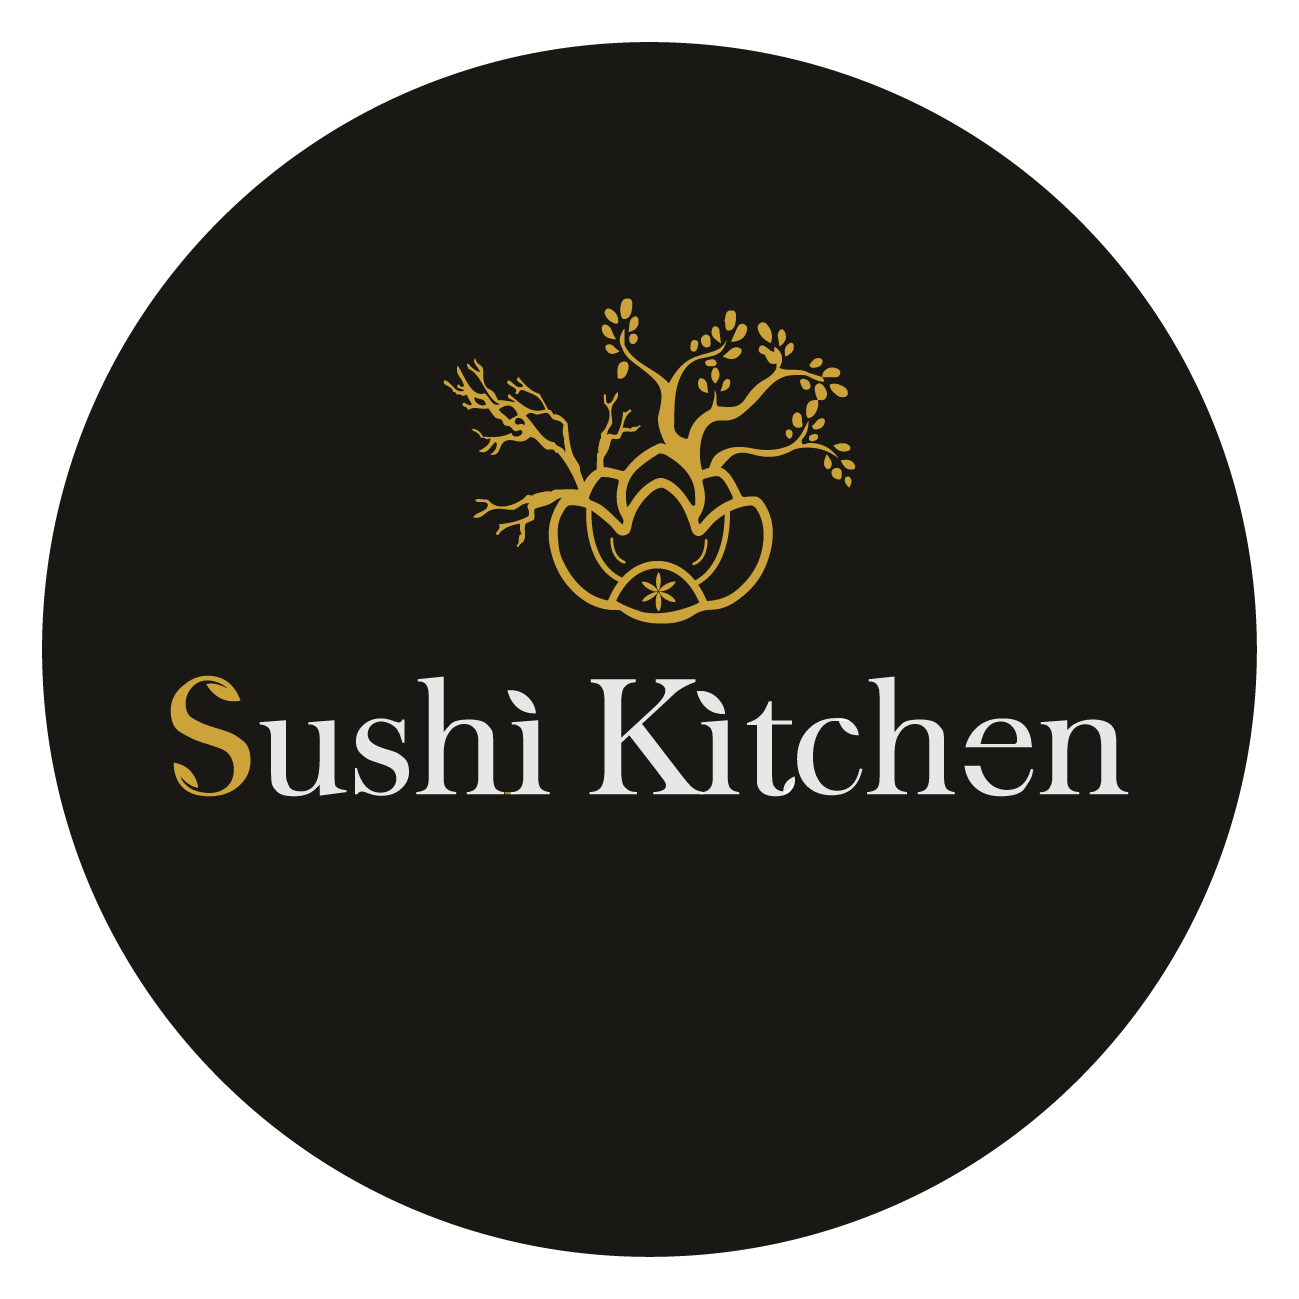 Sushi Kitchen ™